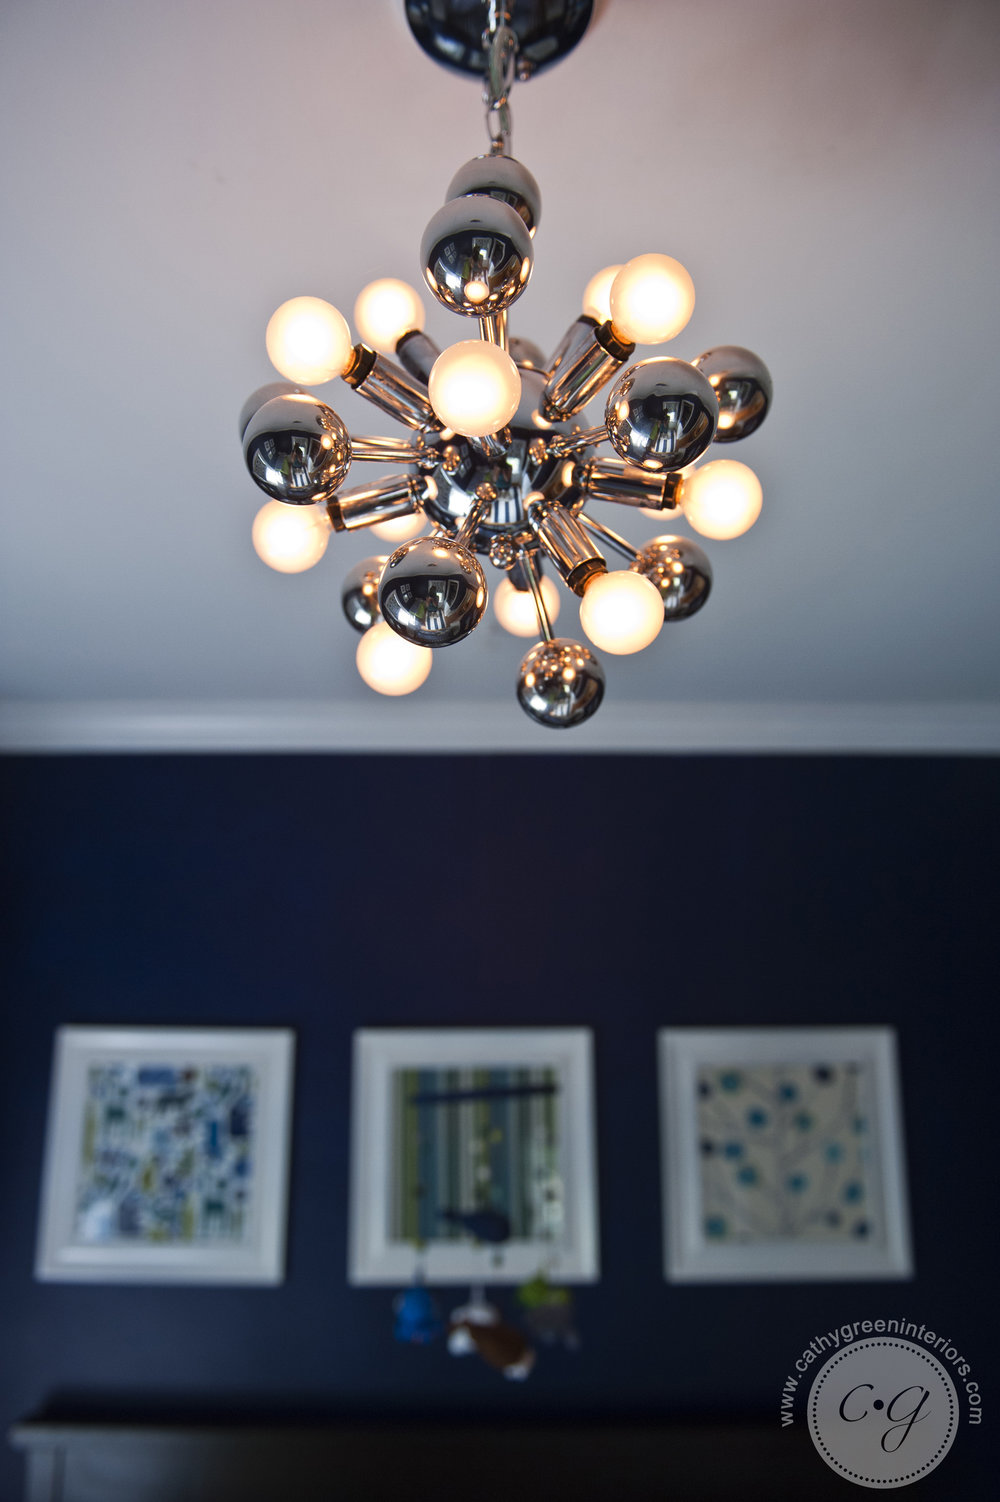 Navy and green nursery atom chandelier - Richmond, VA